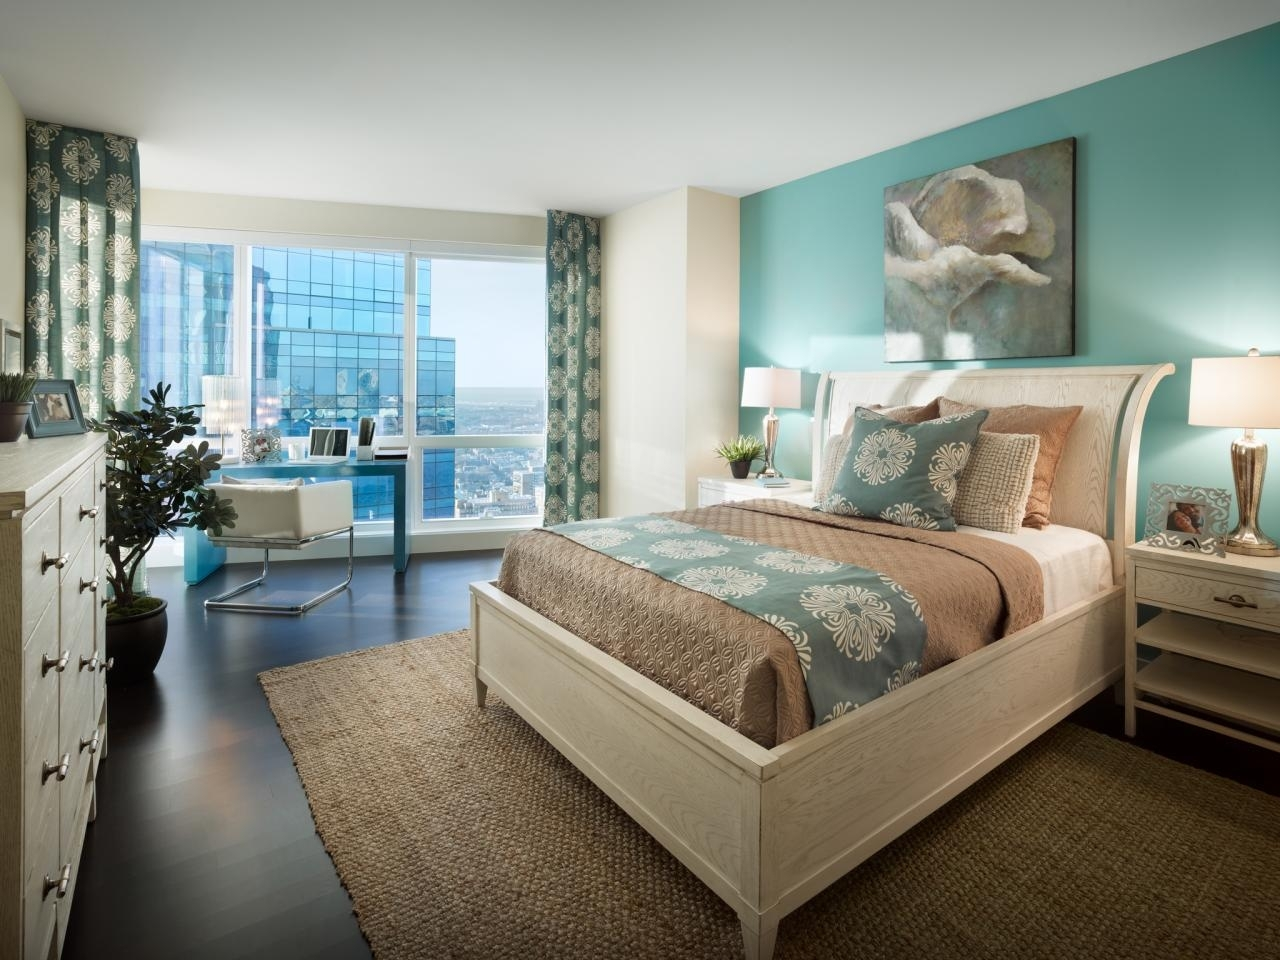 Bedroom | Coastal Accent Use Aquamarine Wall Accent – Contrast Way Inside Most Popular Wall Accents For Beige Room (View 1 of 15)